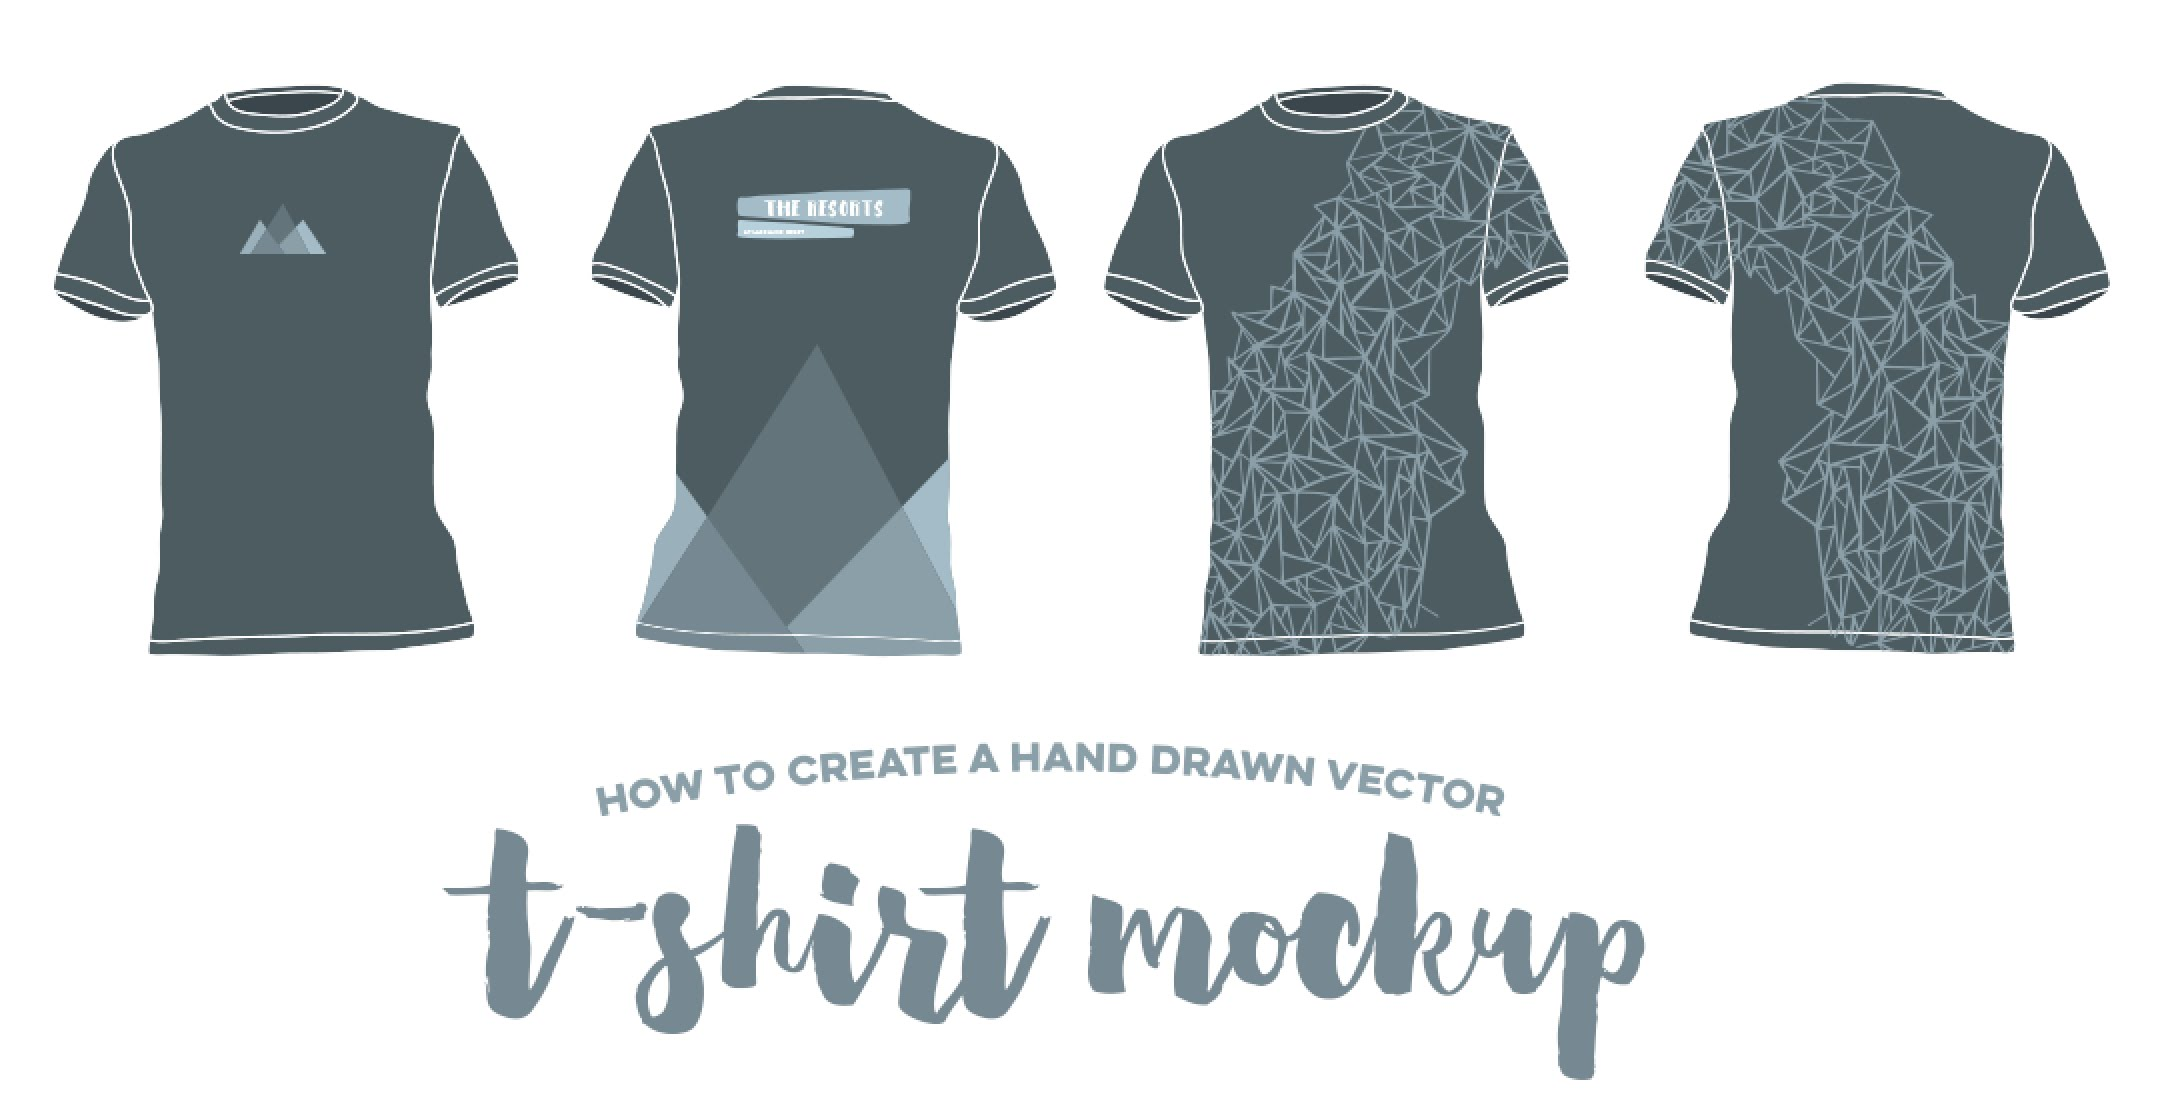 2158x1098 How To Create A Hand Drawn Vector T Shirt Mockup